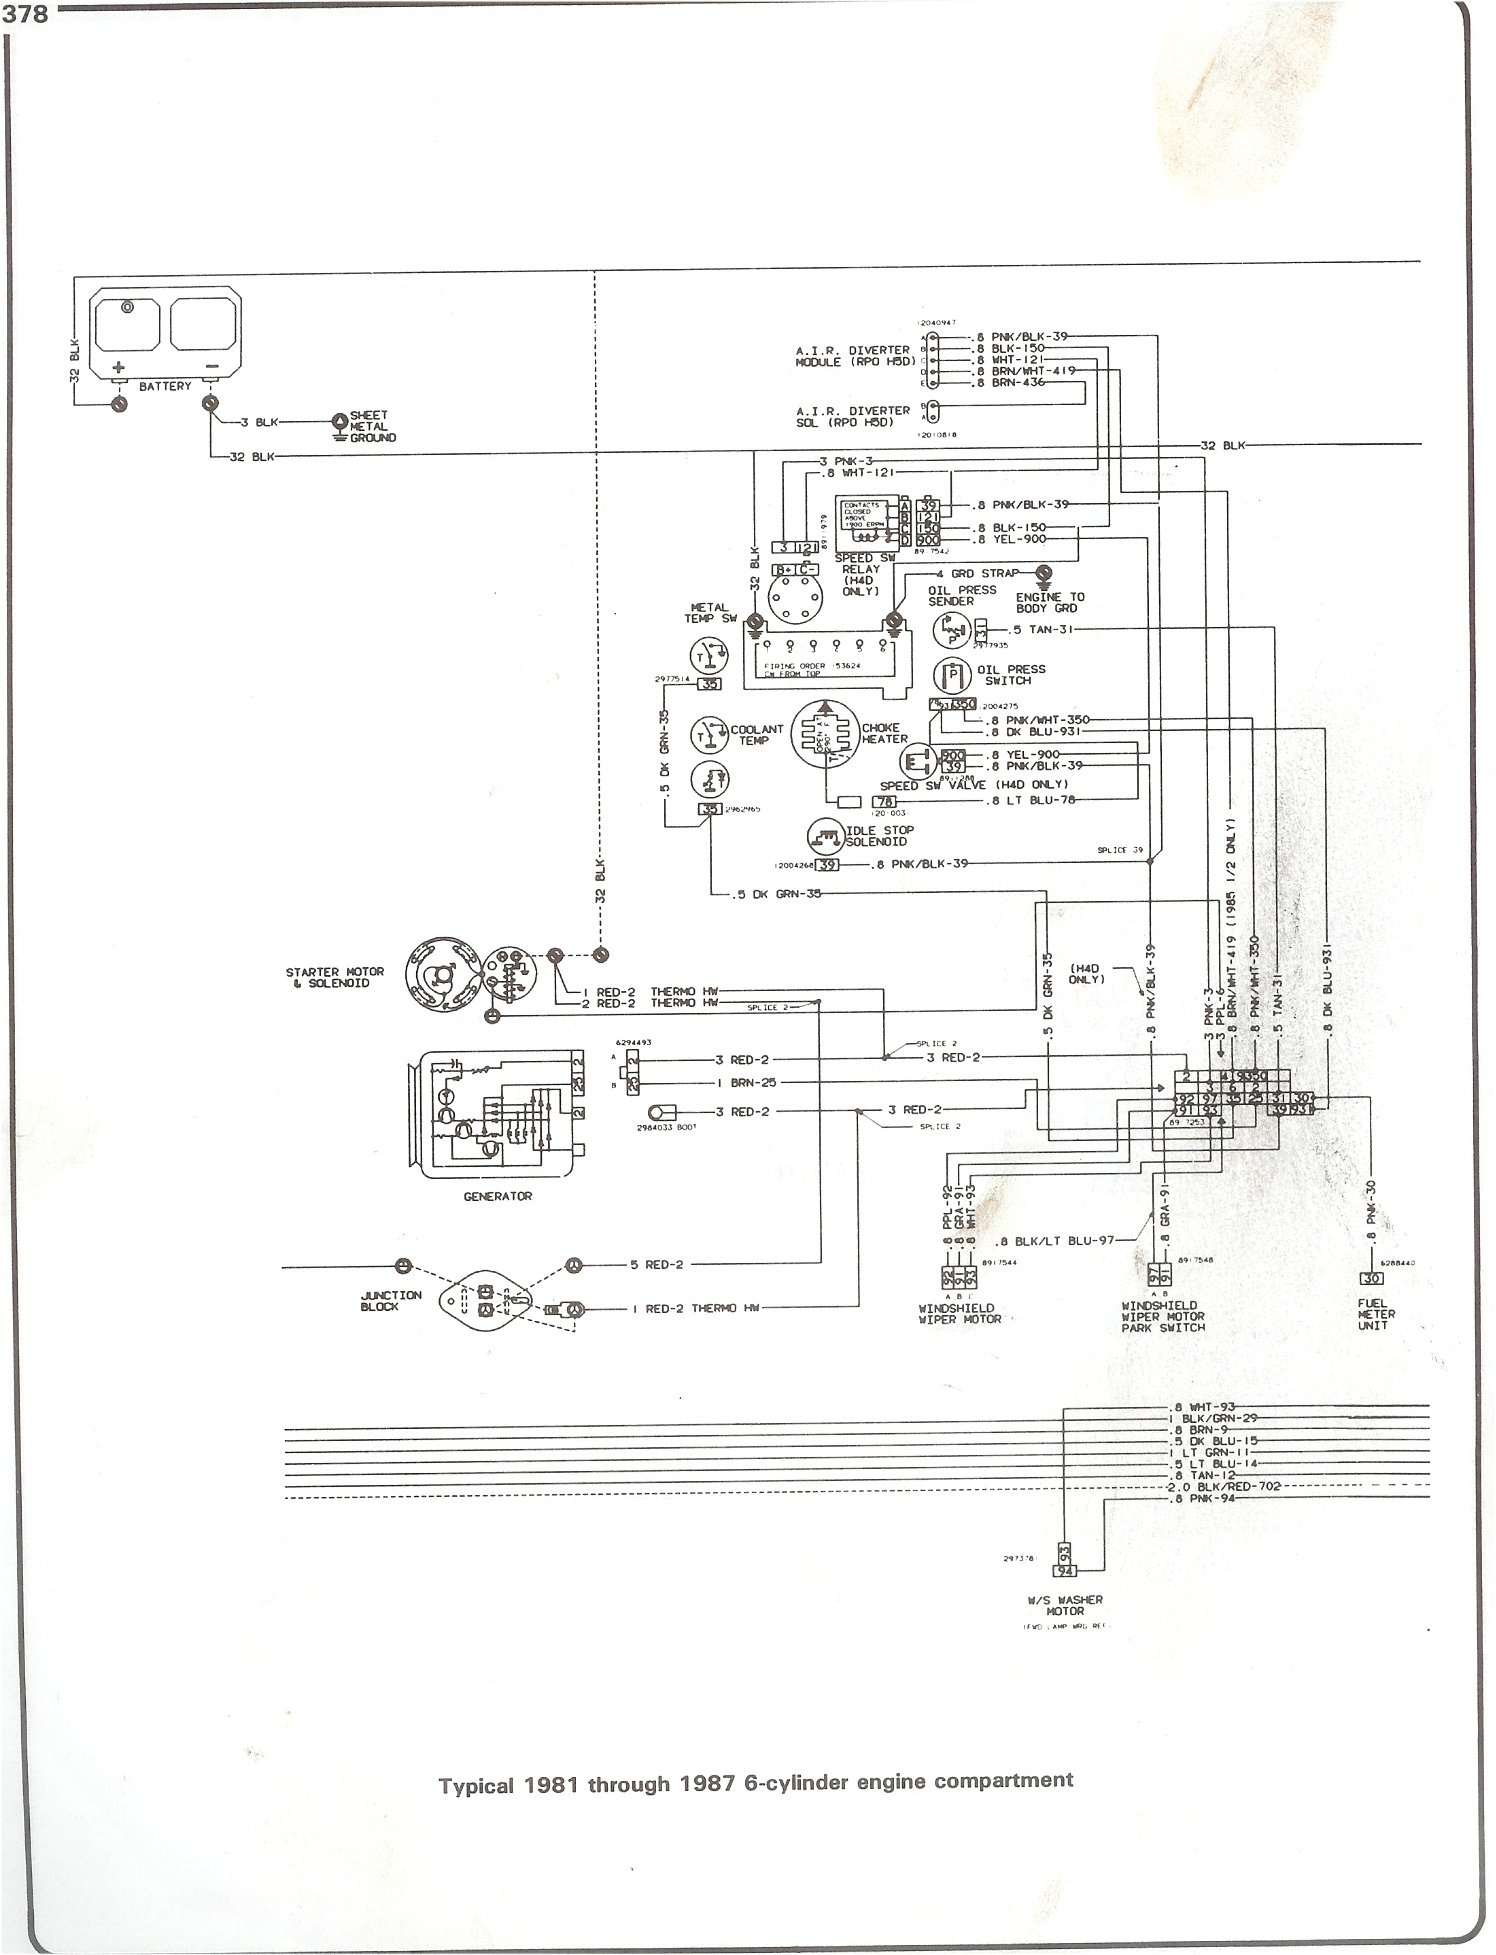 1985 chevy engine wiring diagram